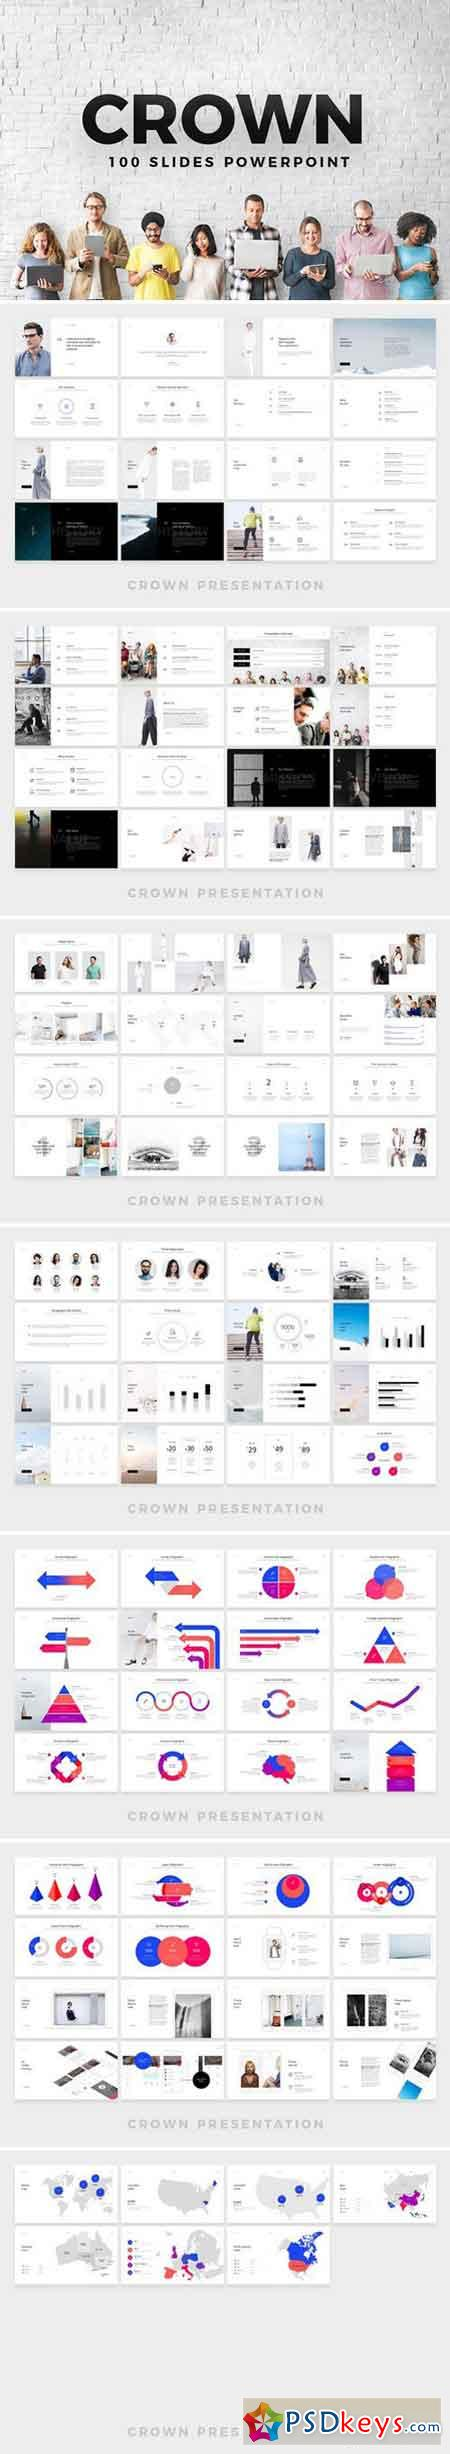 CROWN Powerpoint Template 1818973